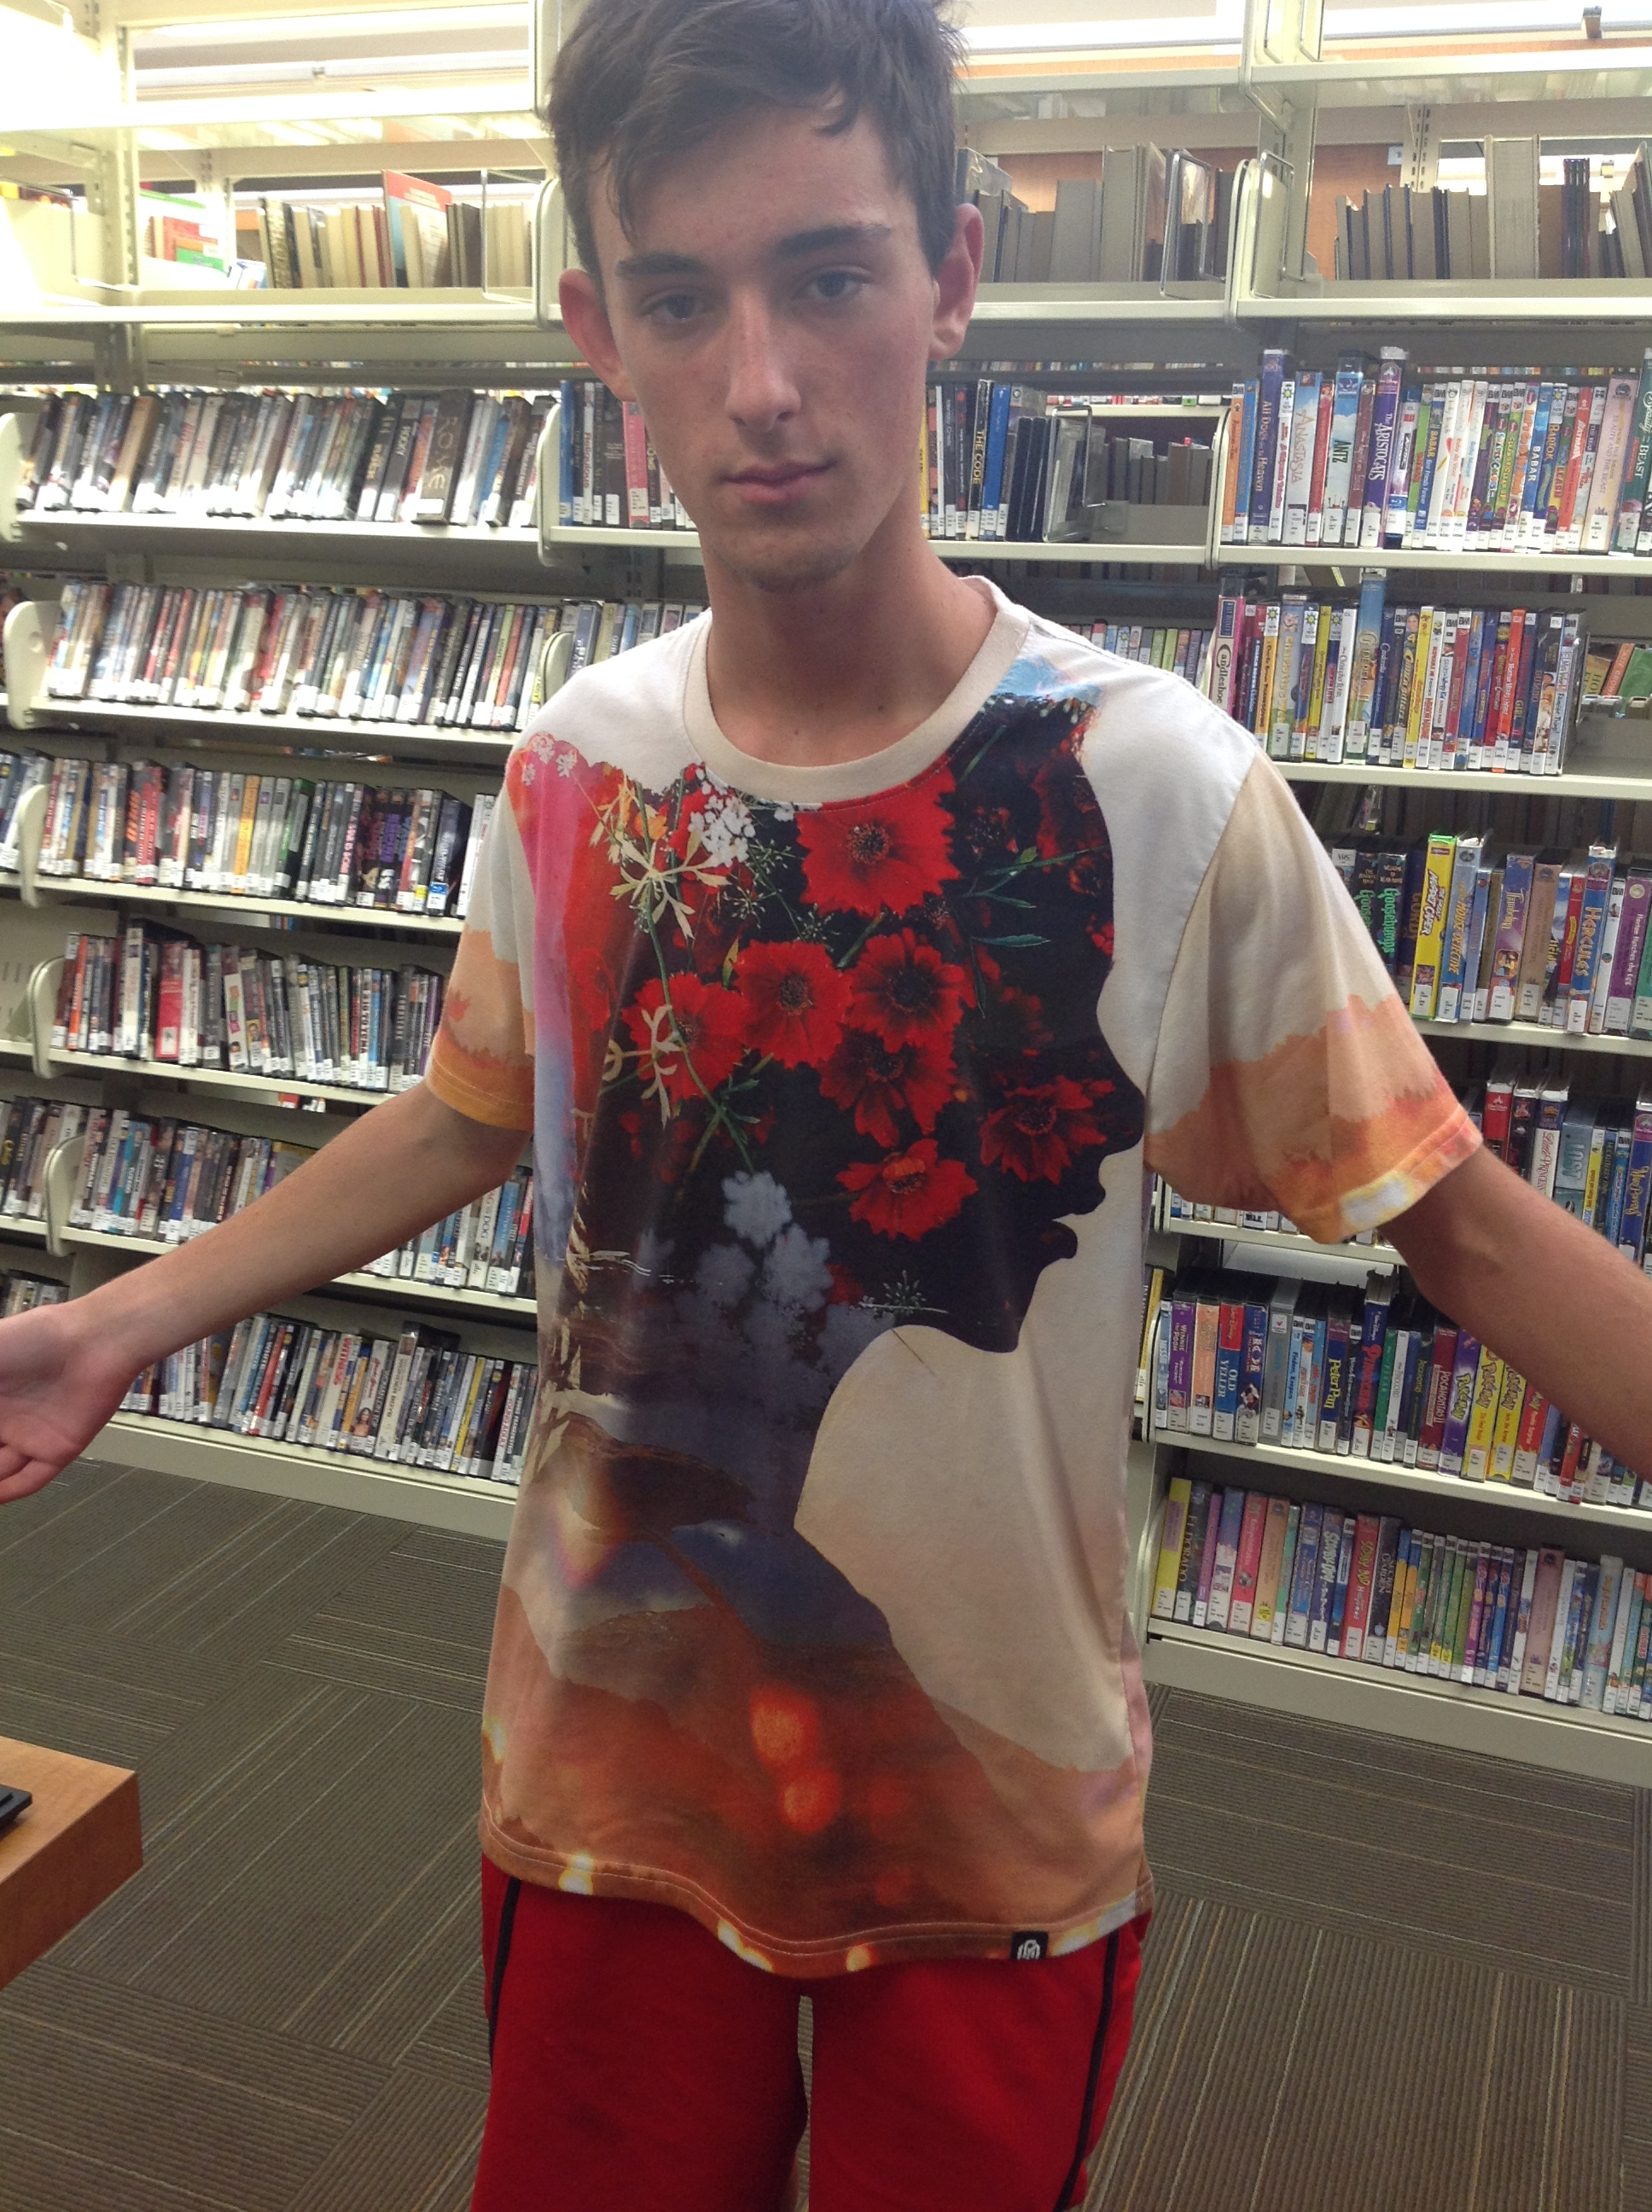 A young man at the library wearing an awesome graphic in Melon and Denim tones with a Coca-Cola graphic feel suitable for #WoodStock50.